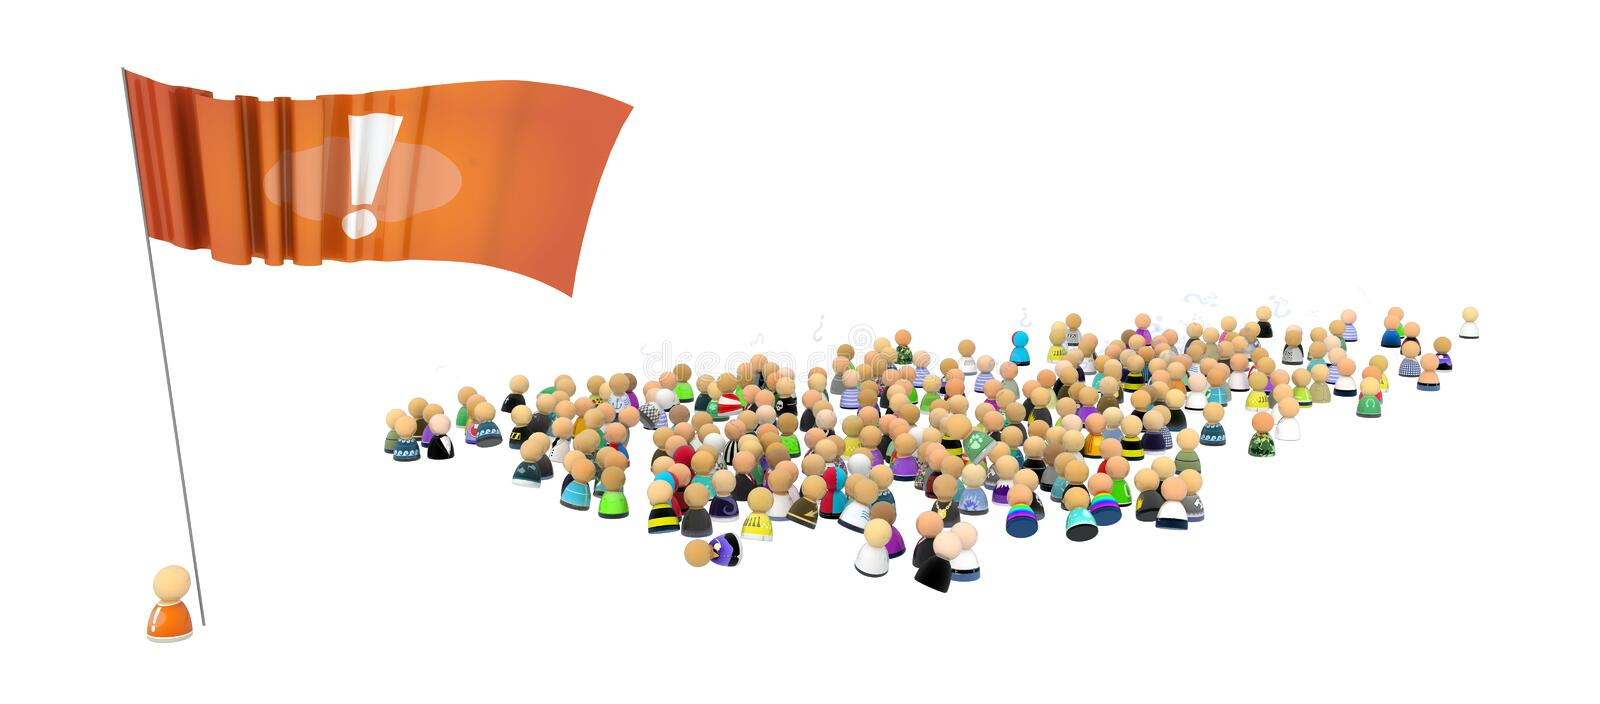 Download Cartoon Crowd, Flag Standing Out Stock Illustration - Image: 17387960